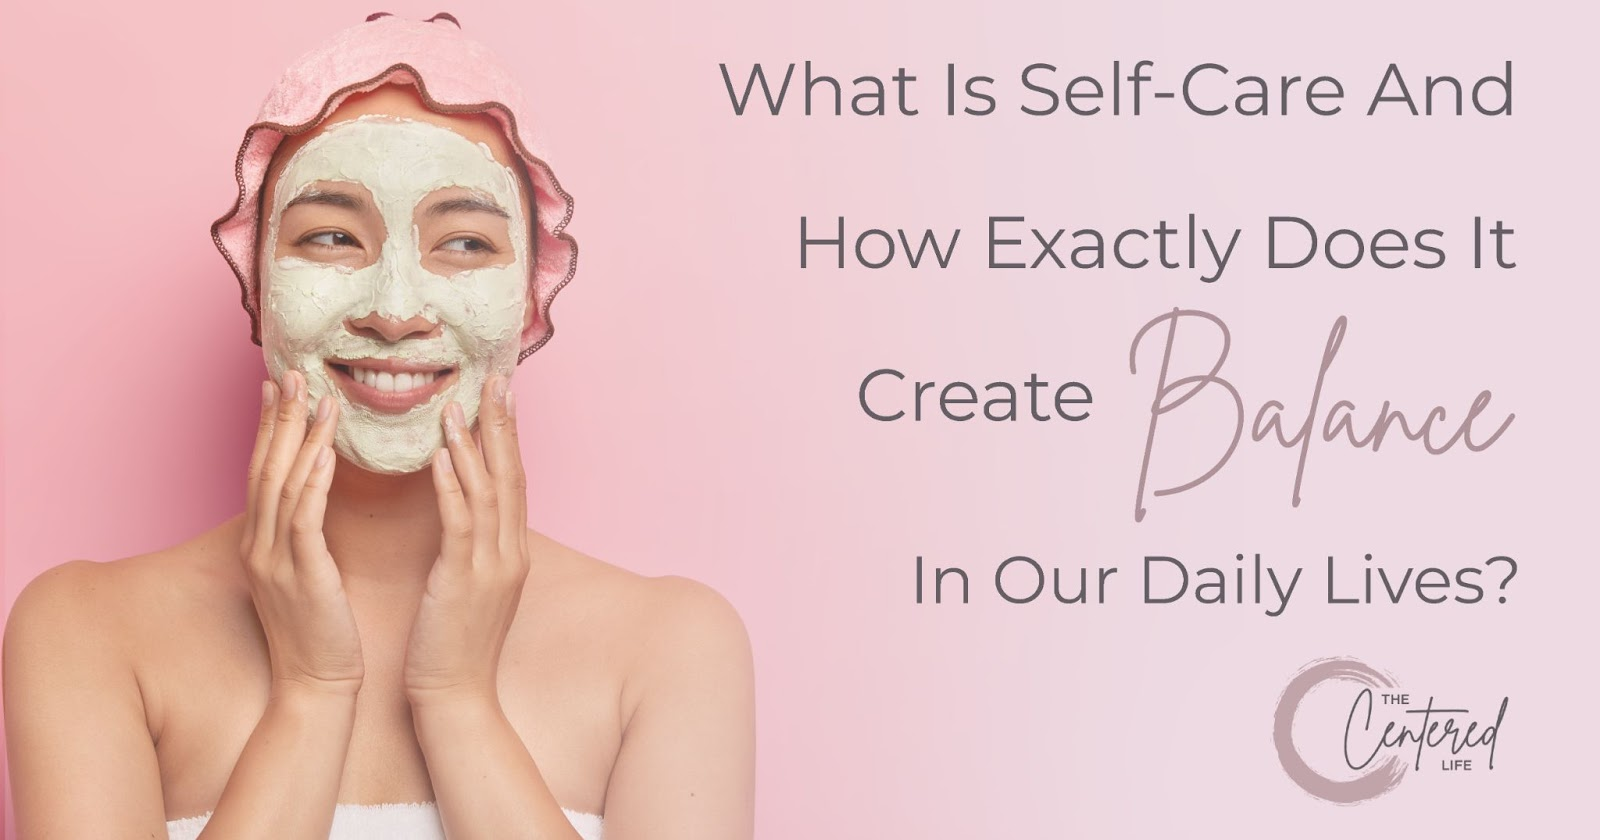 What is Self-Care and how exactly does it create BALANCE in our daily lives?